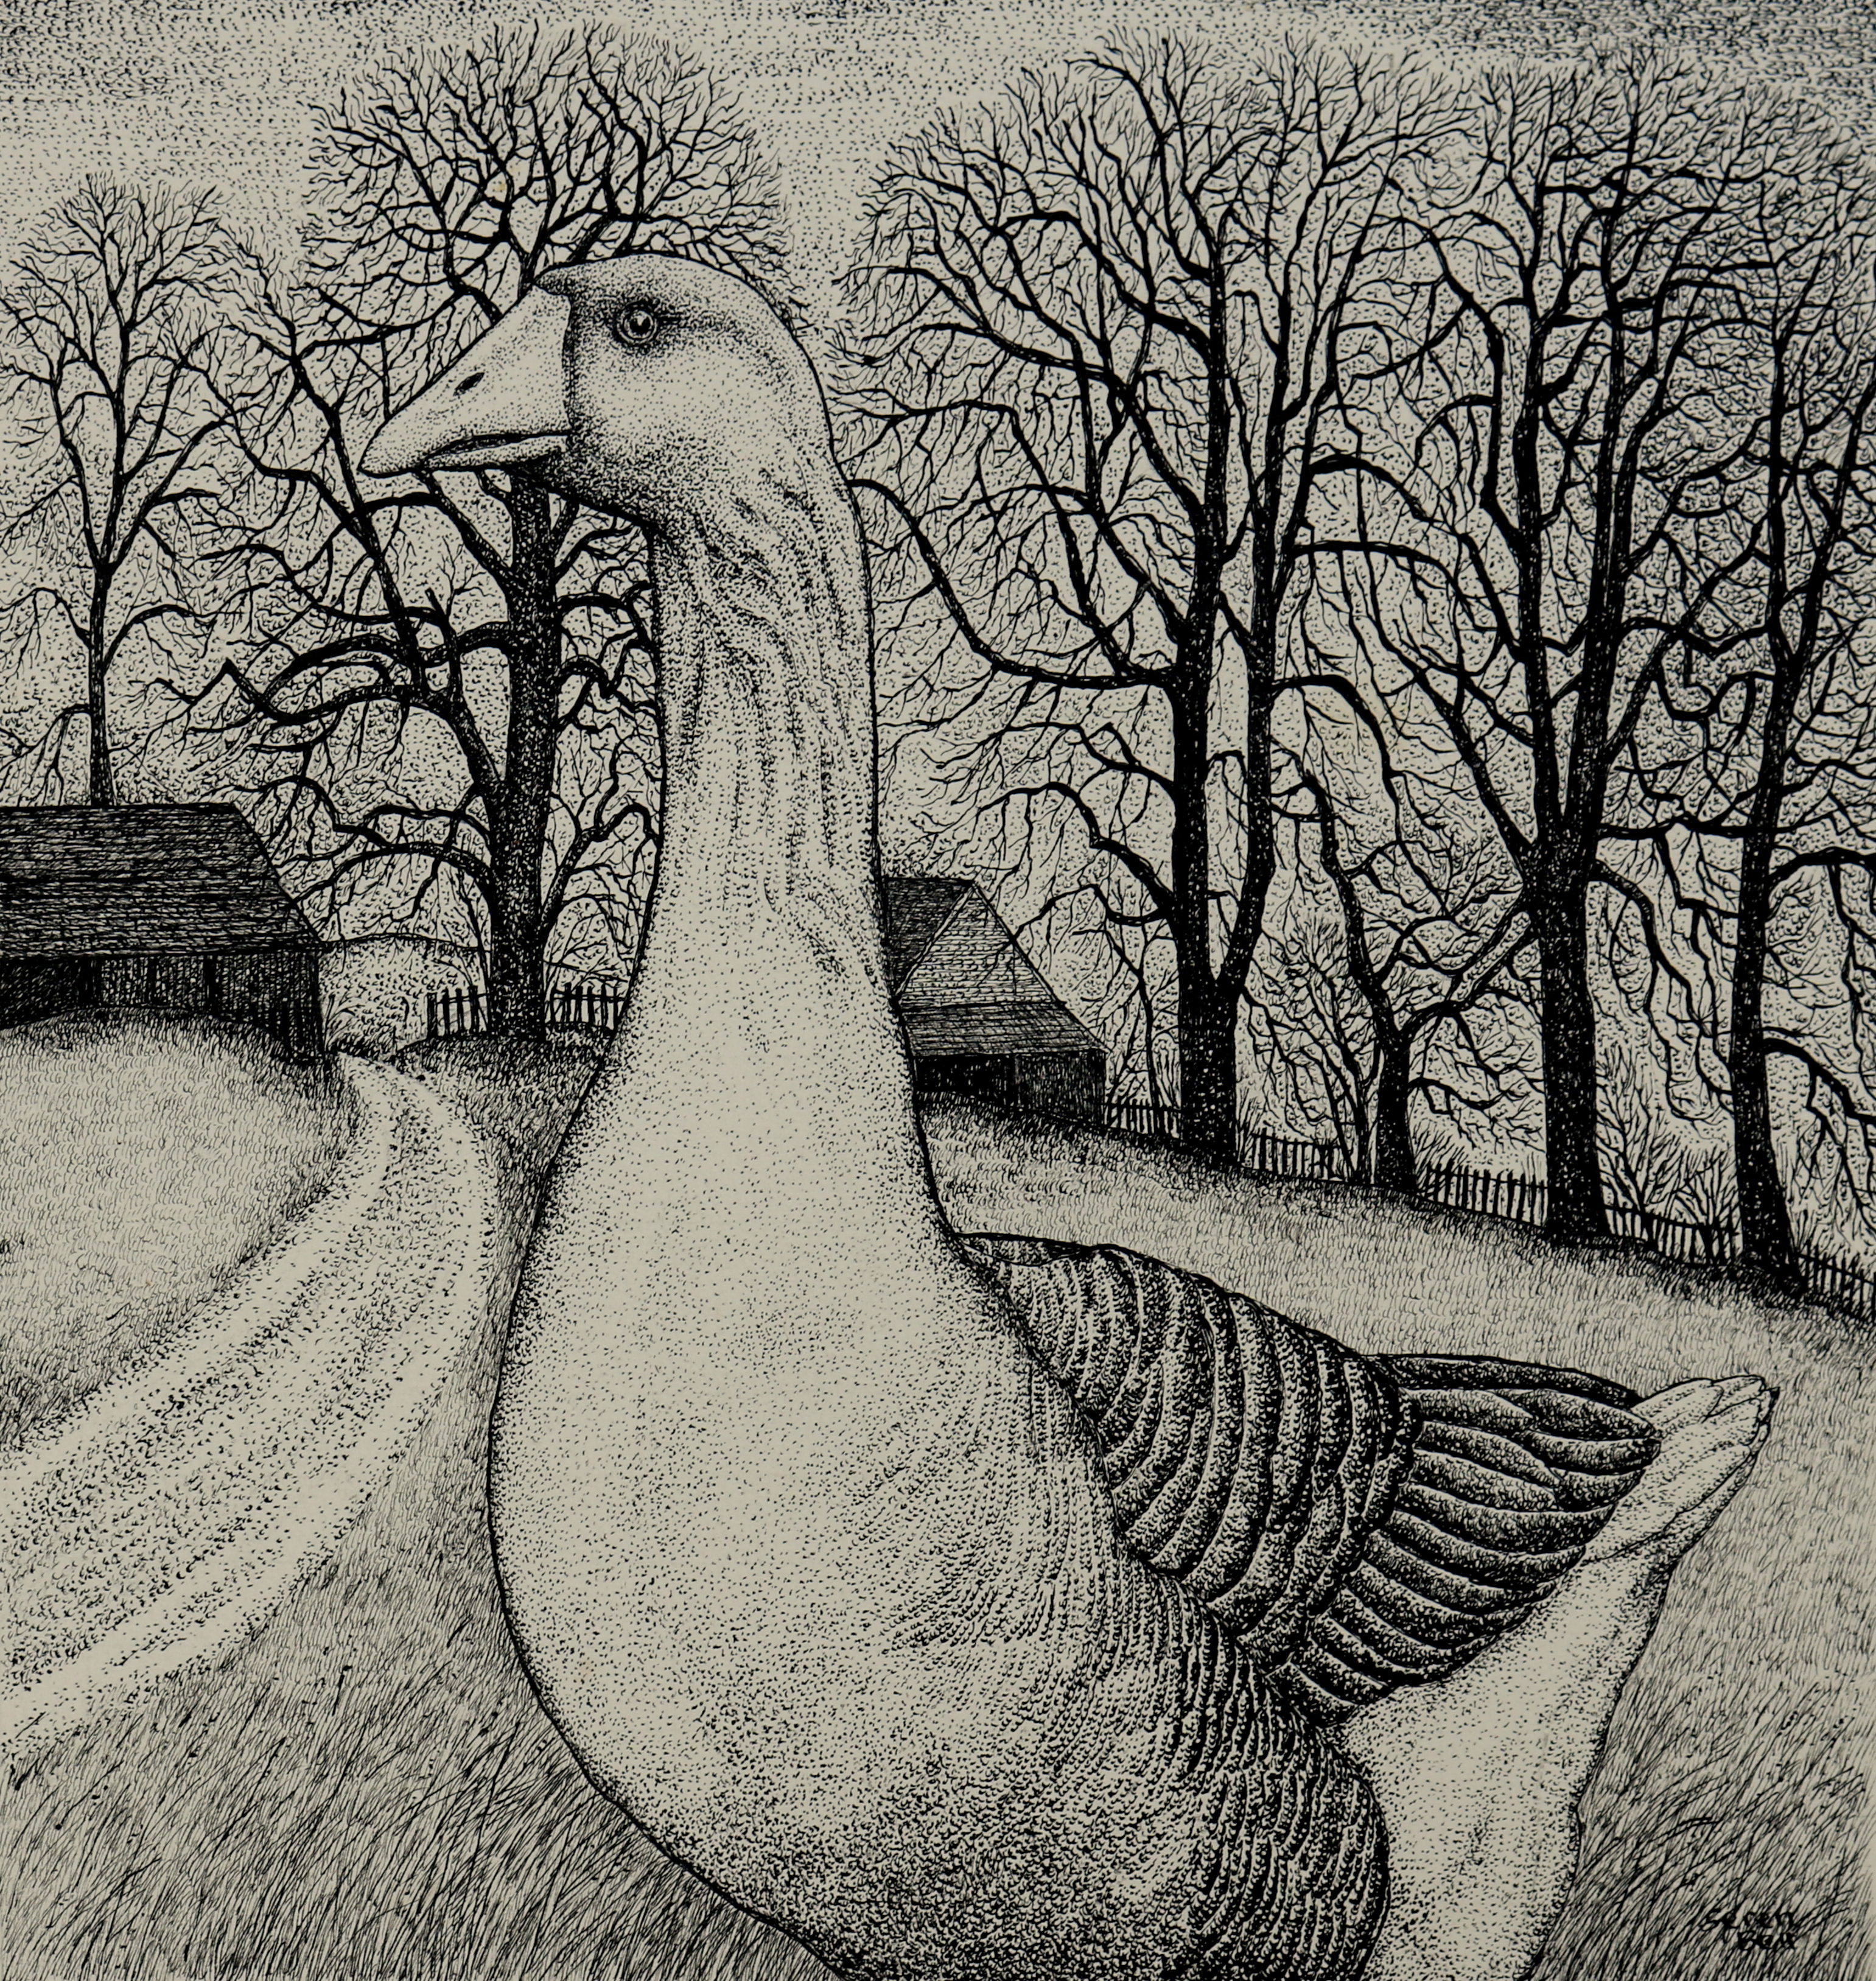 Original pen and ink 'The Goose'